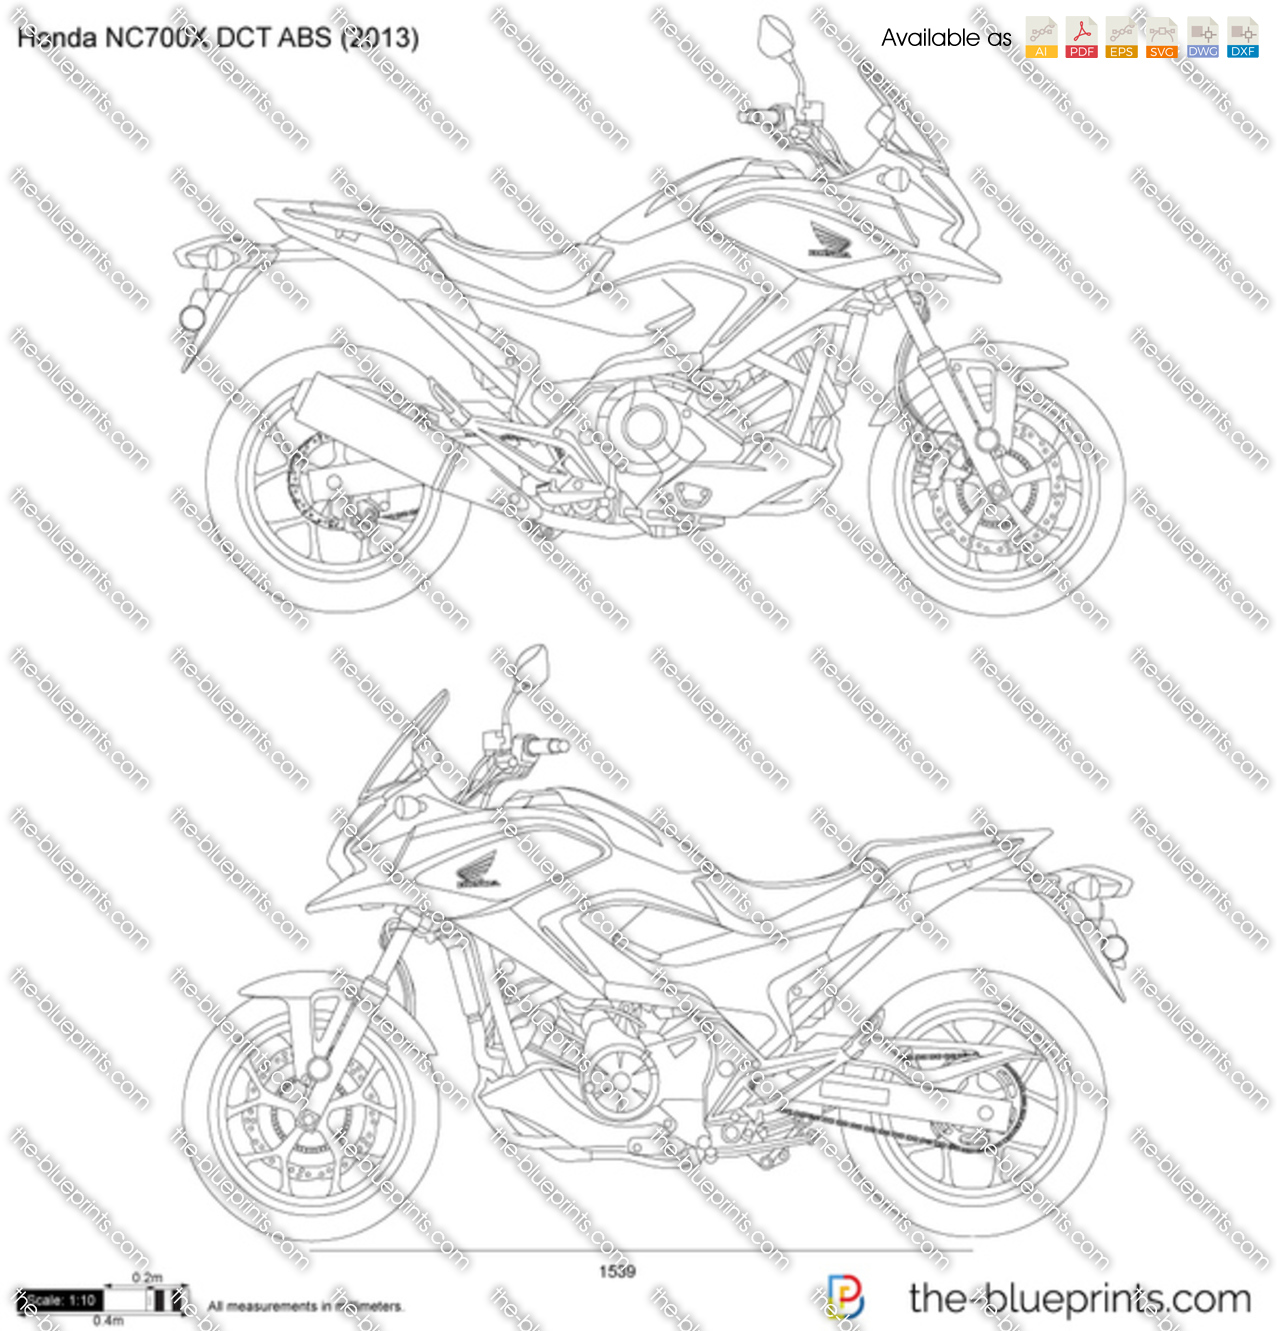 honda nc700x dct abs vector drawing